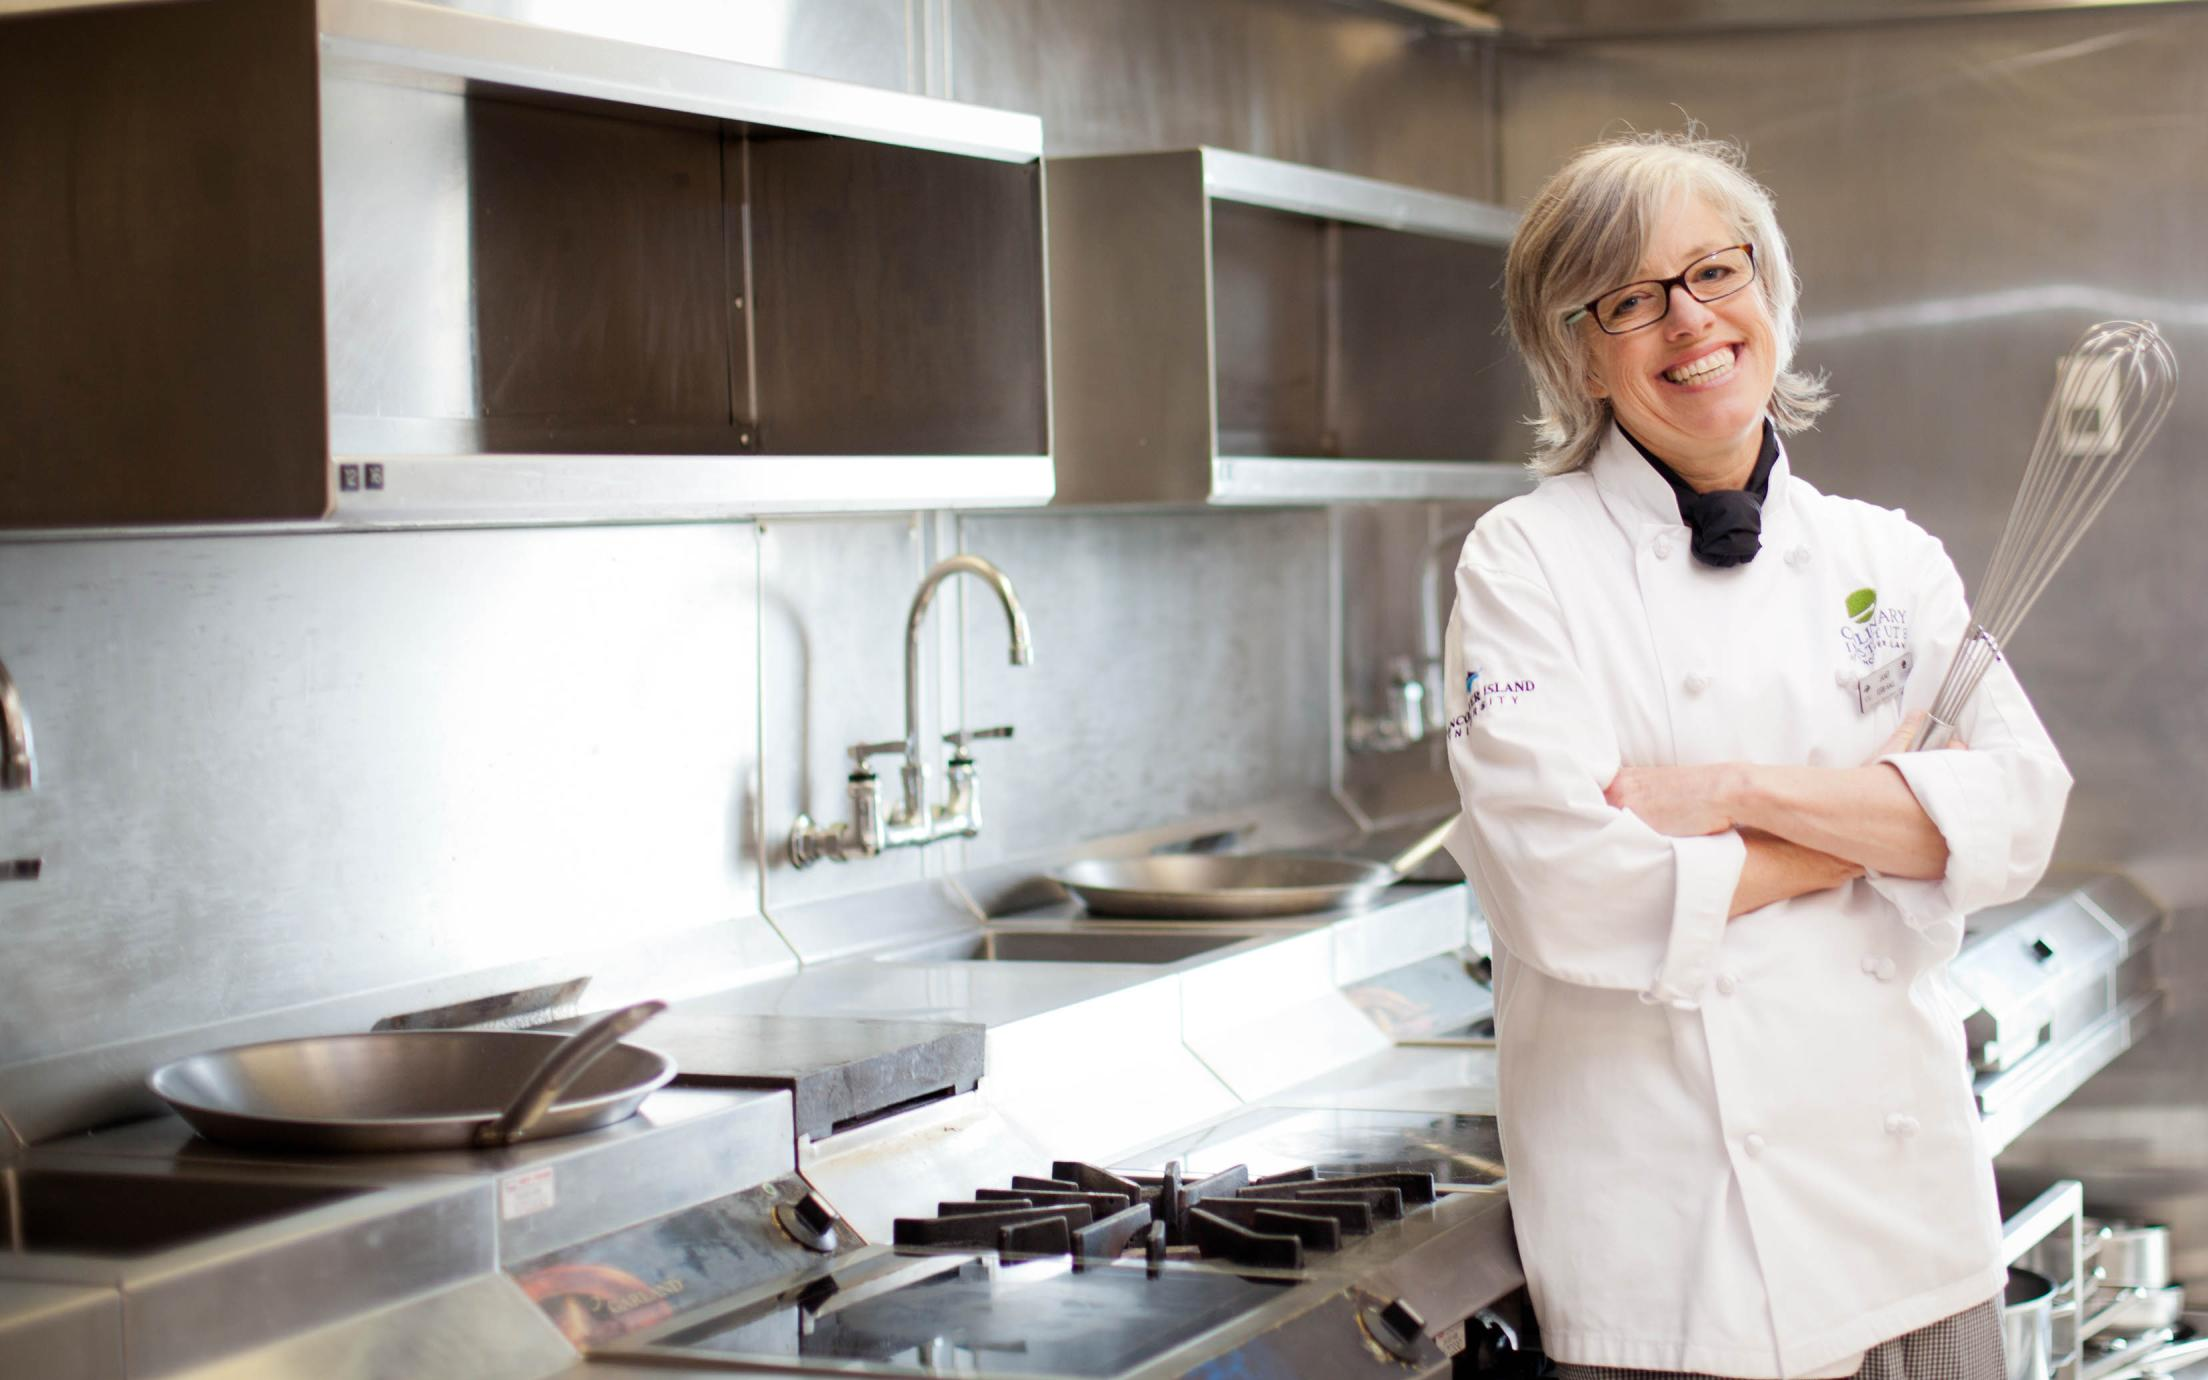 Culinary Management Diploma Student, Janet Kerr-Hall, in the kitchen of VIU's Culinary Institute